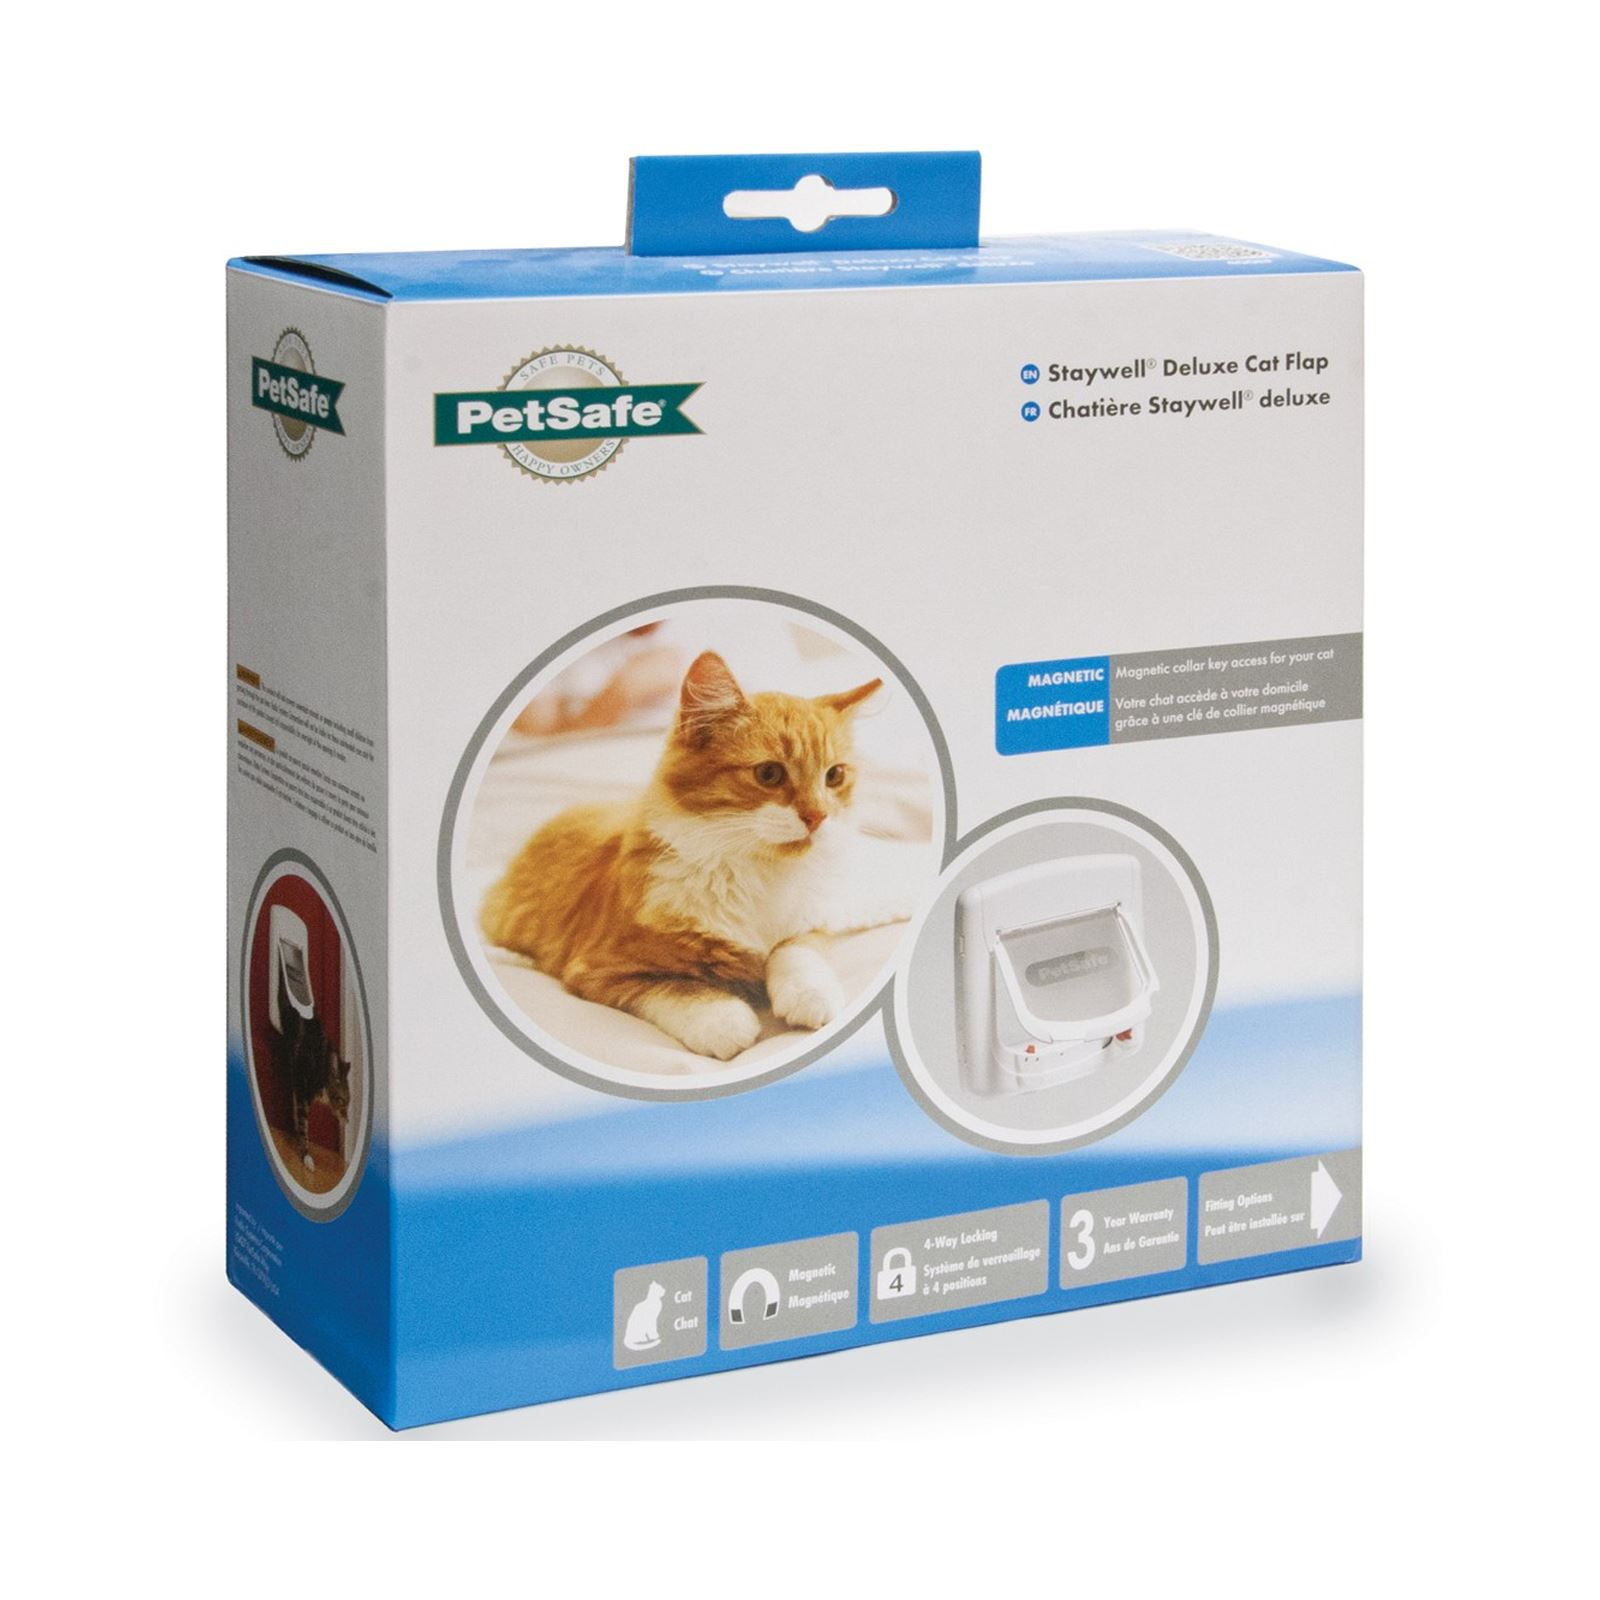 Cat-Flap-Petsafe-Staywell-Deluxe-4-Way-Locking-Cat-Door-Manual-Magnetic-catflap thumbnail 7